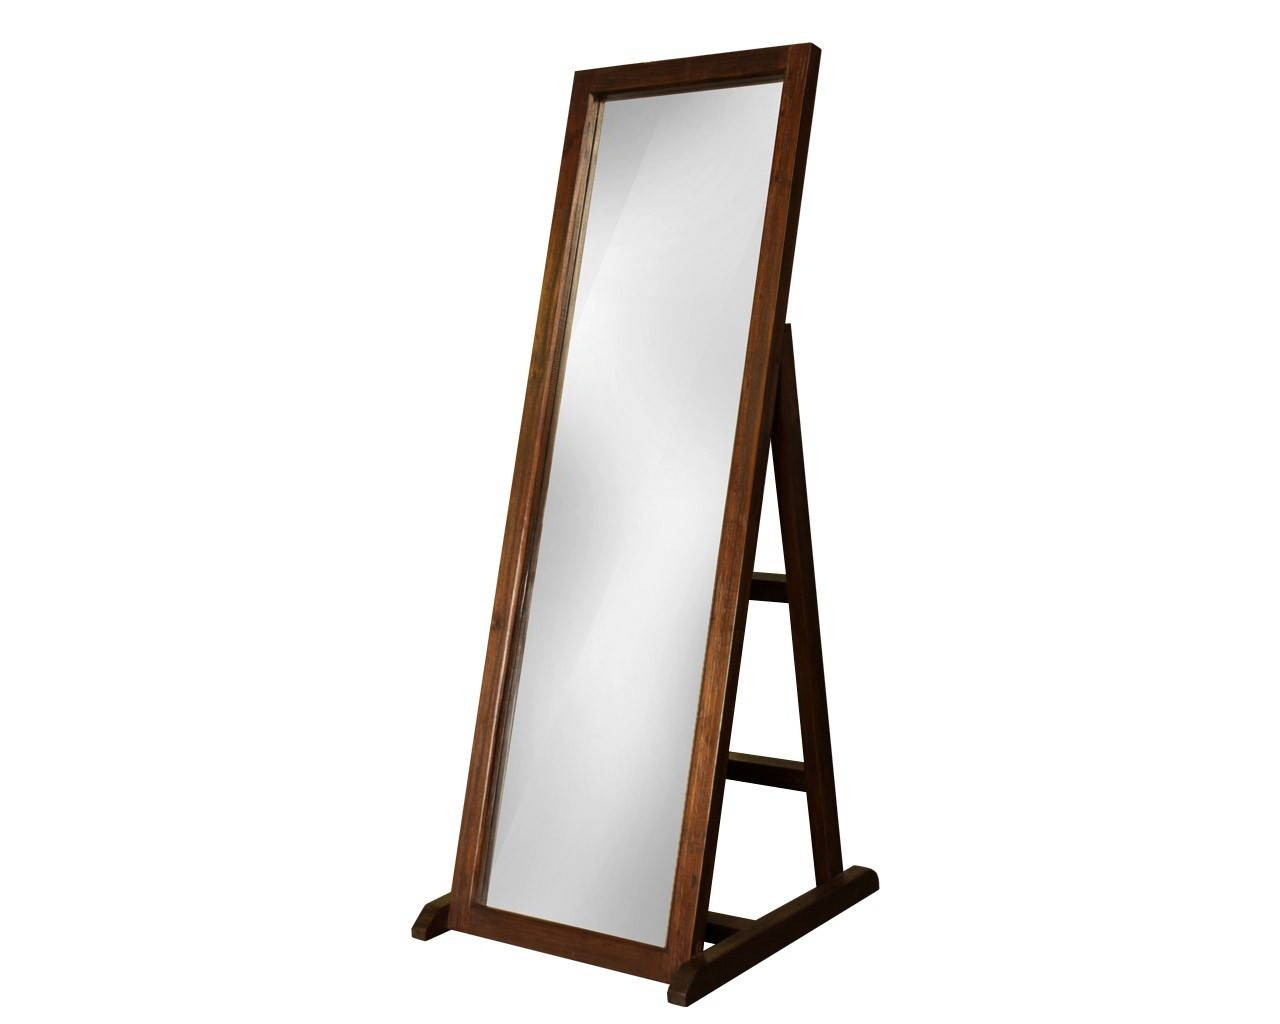 Cheval Mirror Frame – Decorative Cheval Mirrors For Your Home Inside Modern Cheval Mirrors (View 5 of 25)